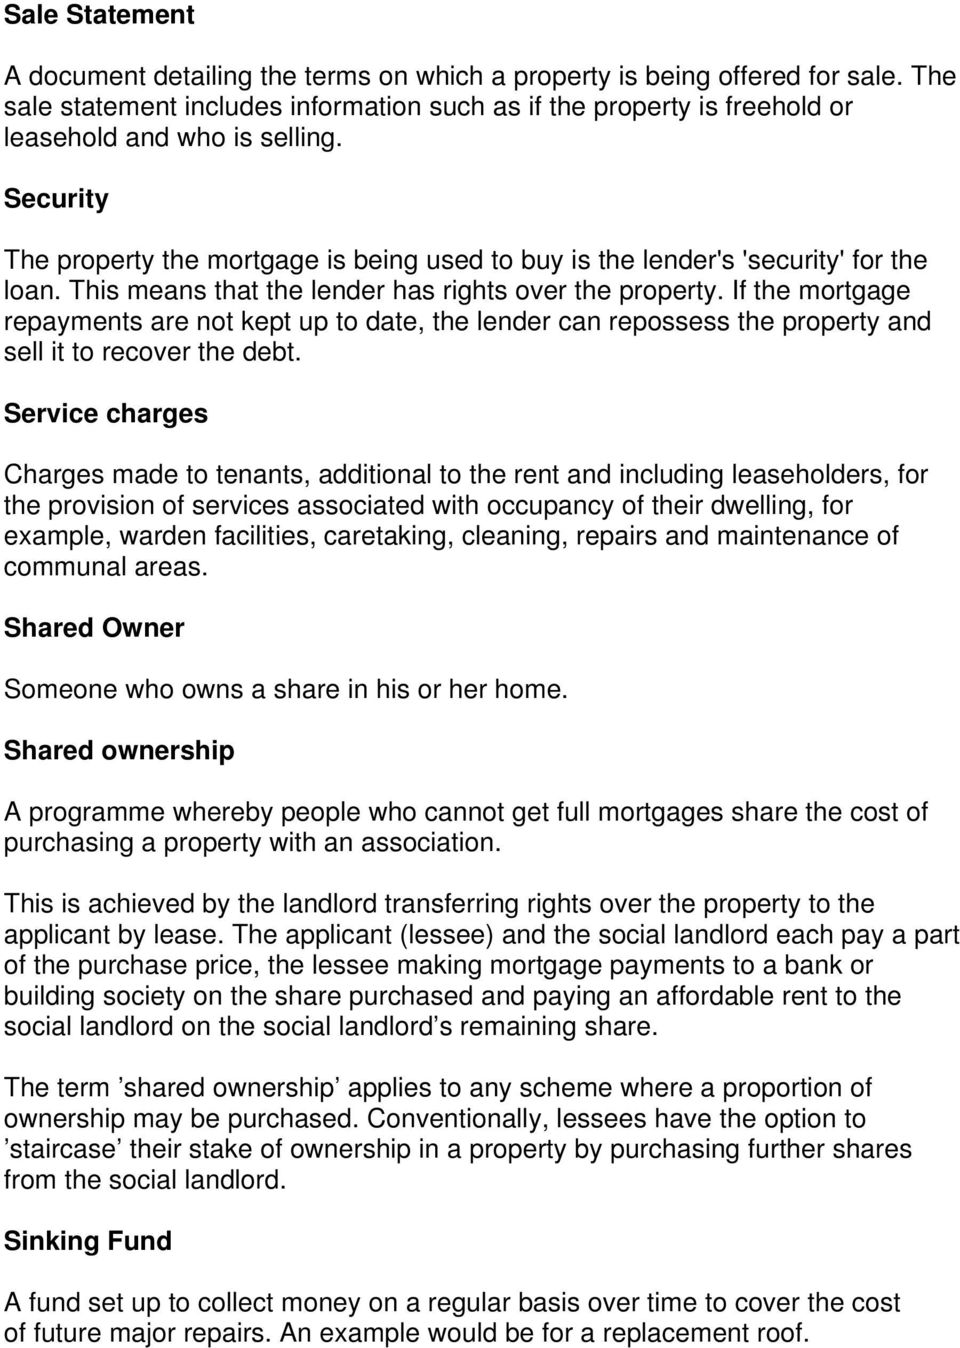 Security The property the mortgage is being used to buy is the lender's 'security' for the loan. This means that the lender has rights over the property.